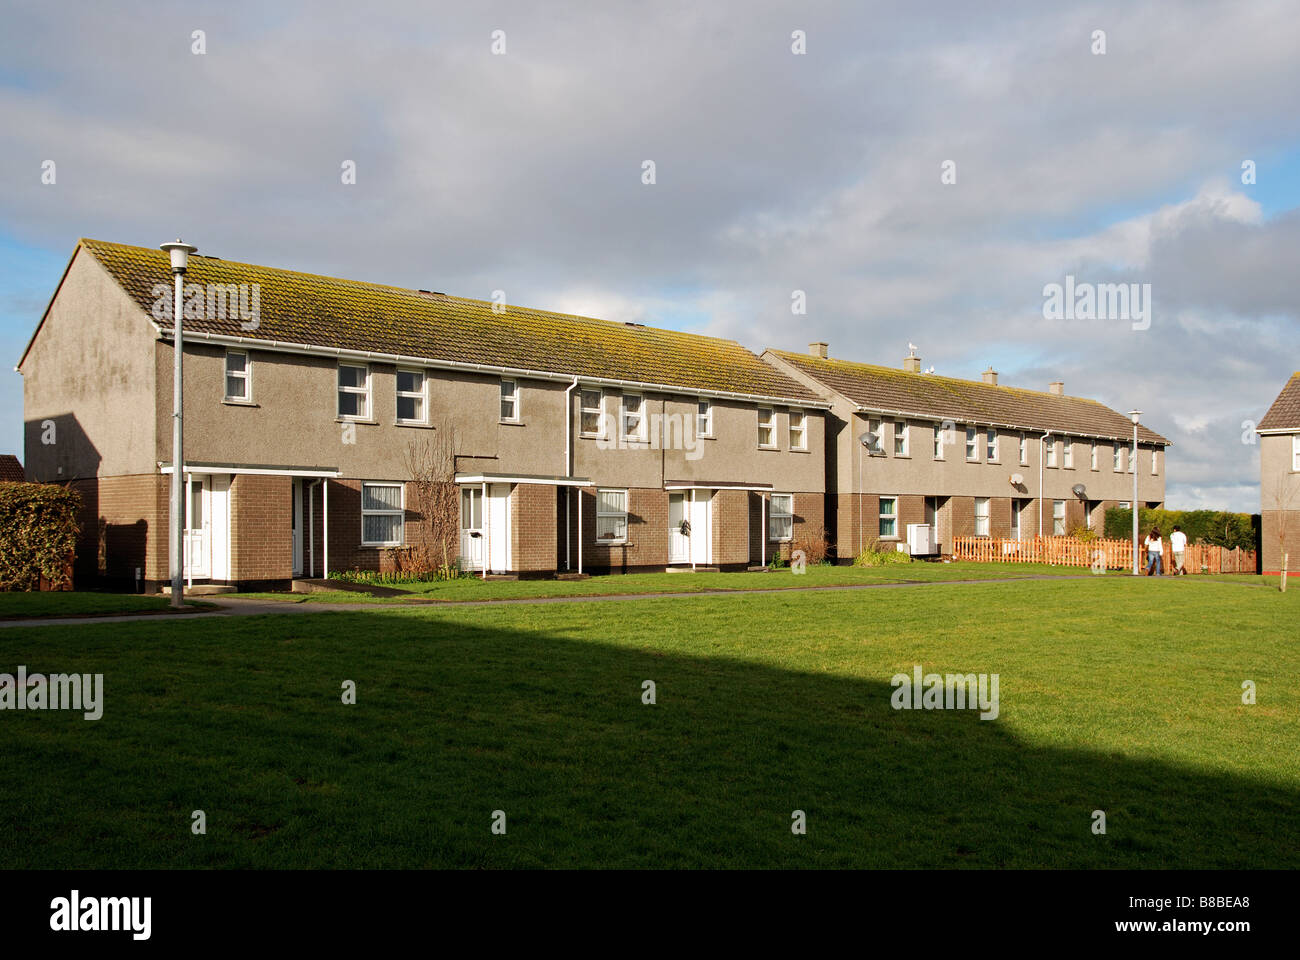 a row of council houses in camborne,cornwall,uk - Stock Image